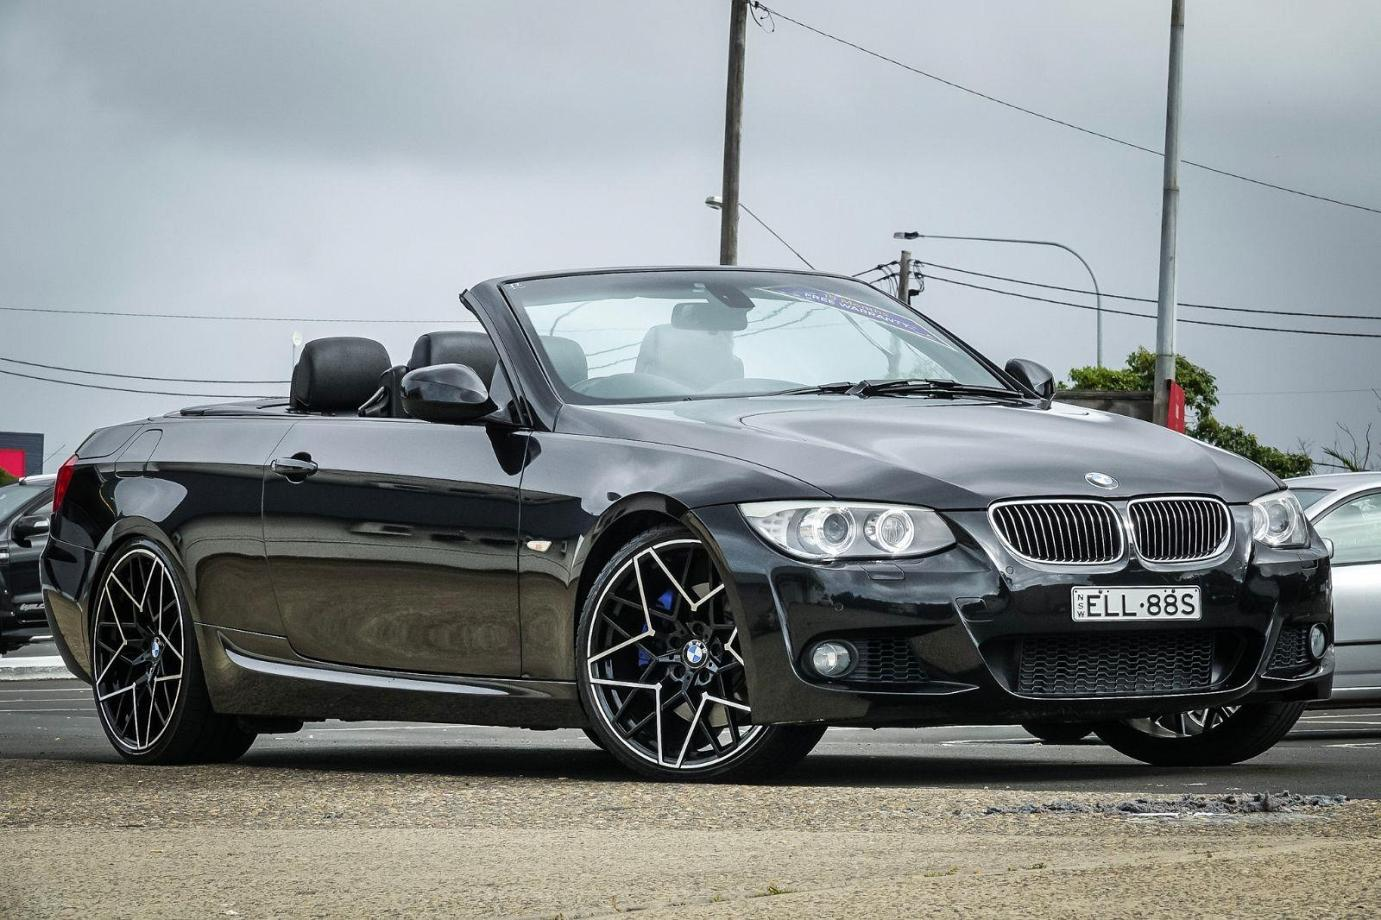 2011 BMW 3 Series E93 MY11 335i M Sport Convertible 2dr D-CT 7sp 3.0T